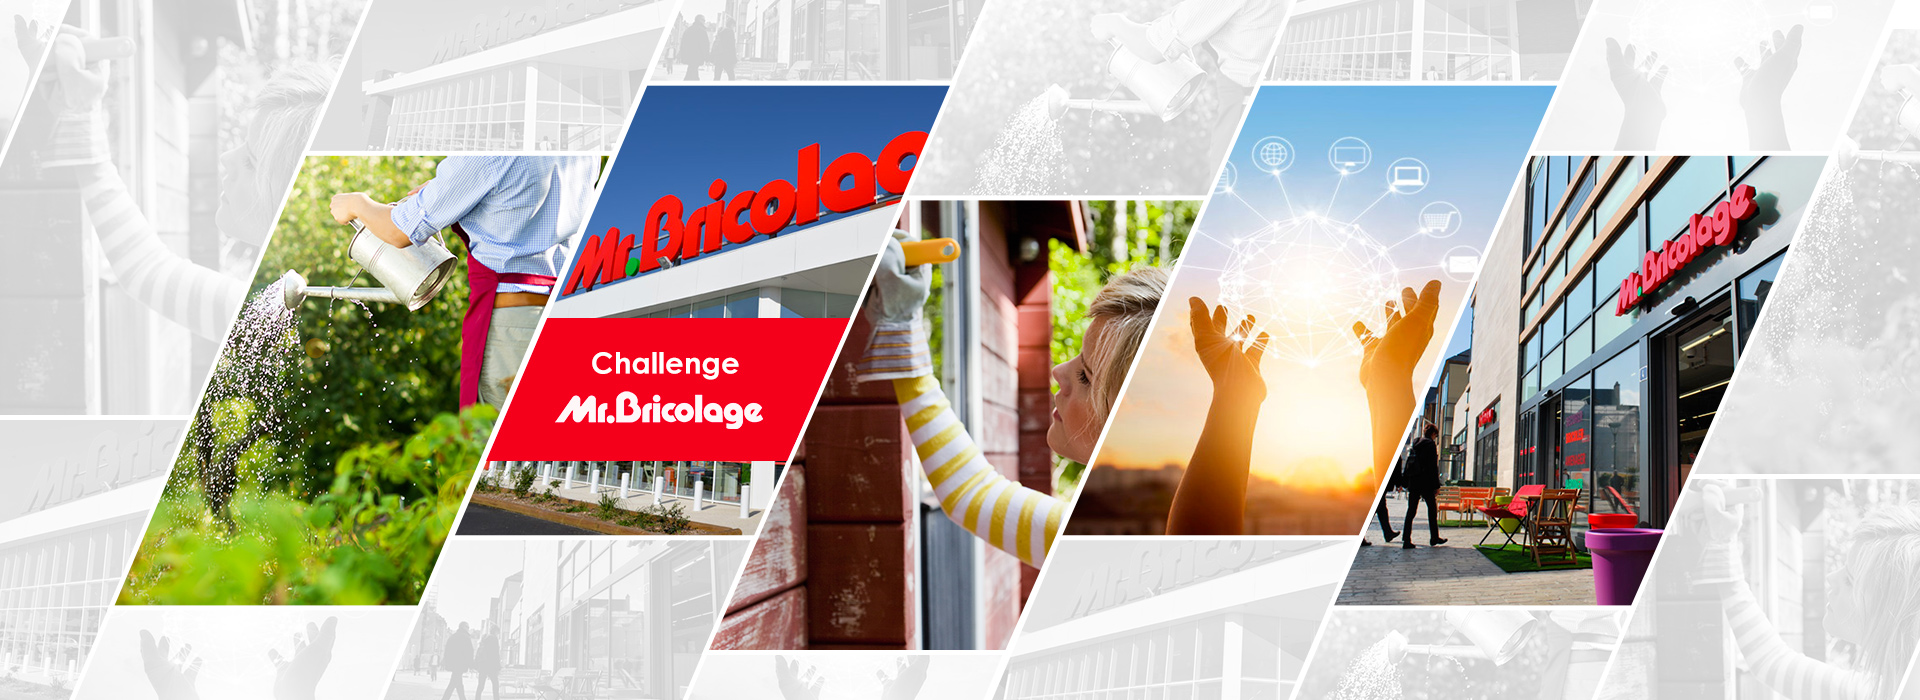 Magasin Bricolage A Proximité Agorize Challenge Mr Bricolage Startup